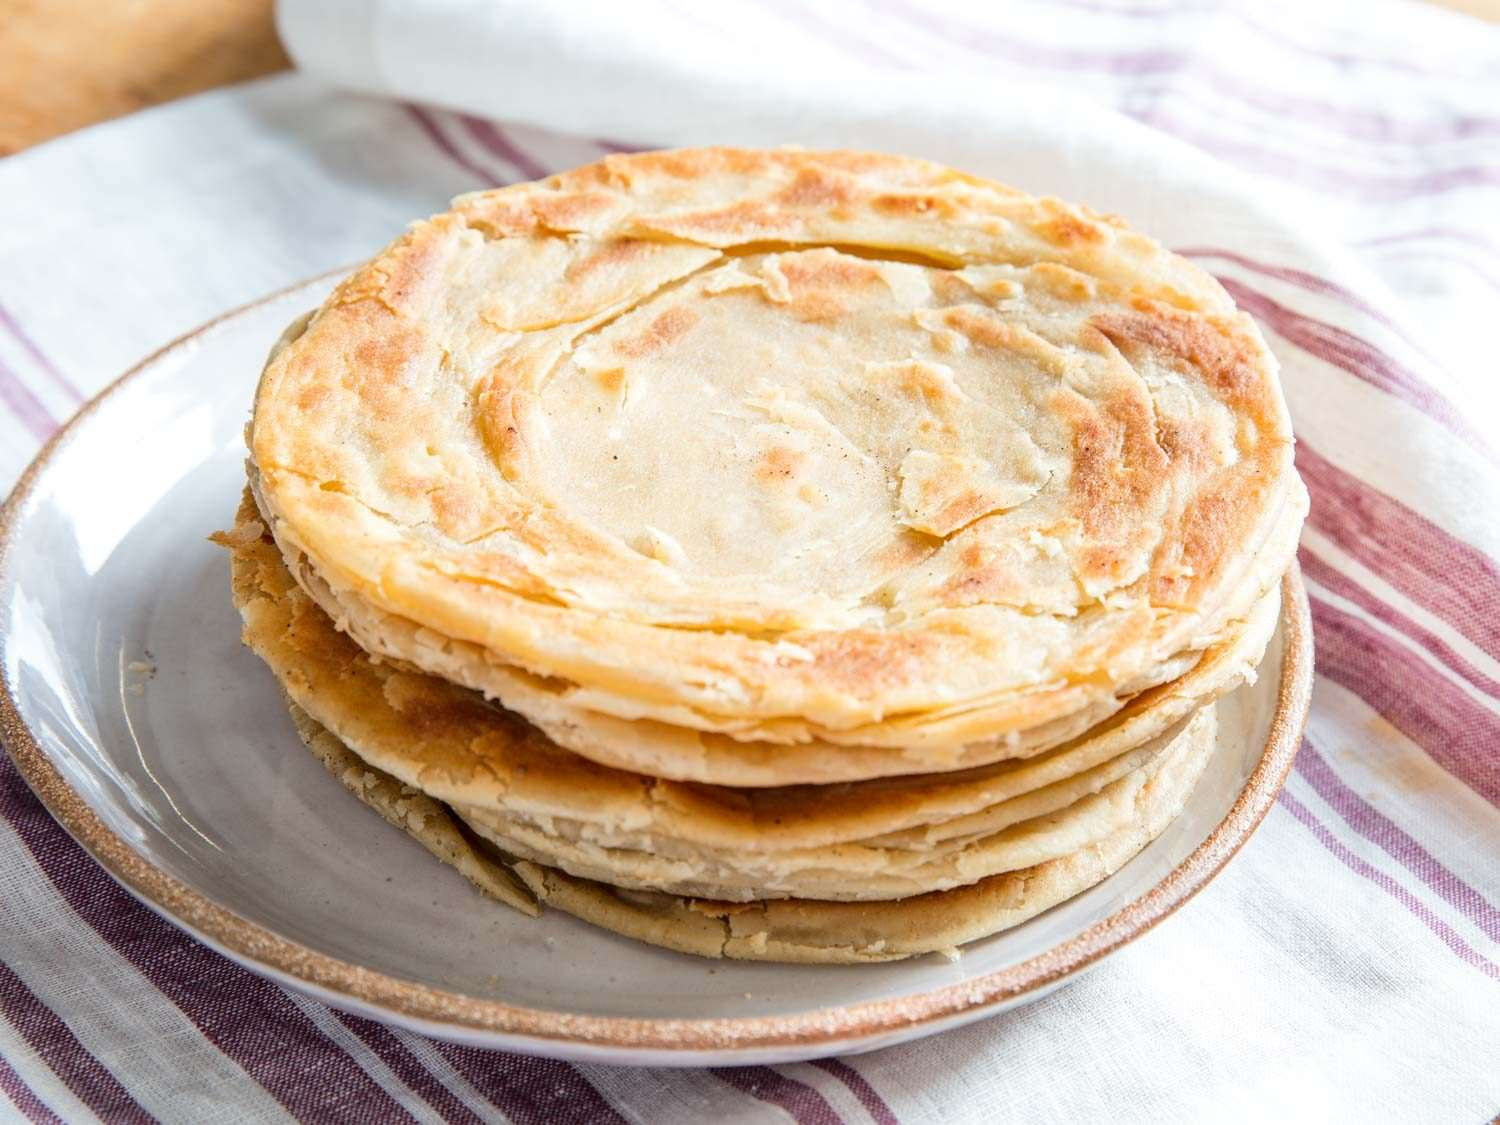 Stack of parathas: flaky, layered Indian flatbread.